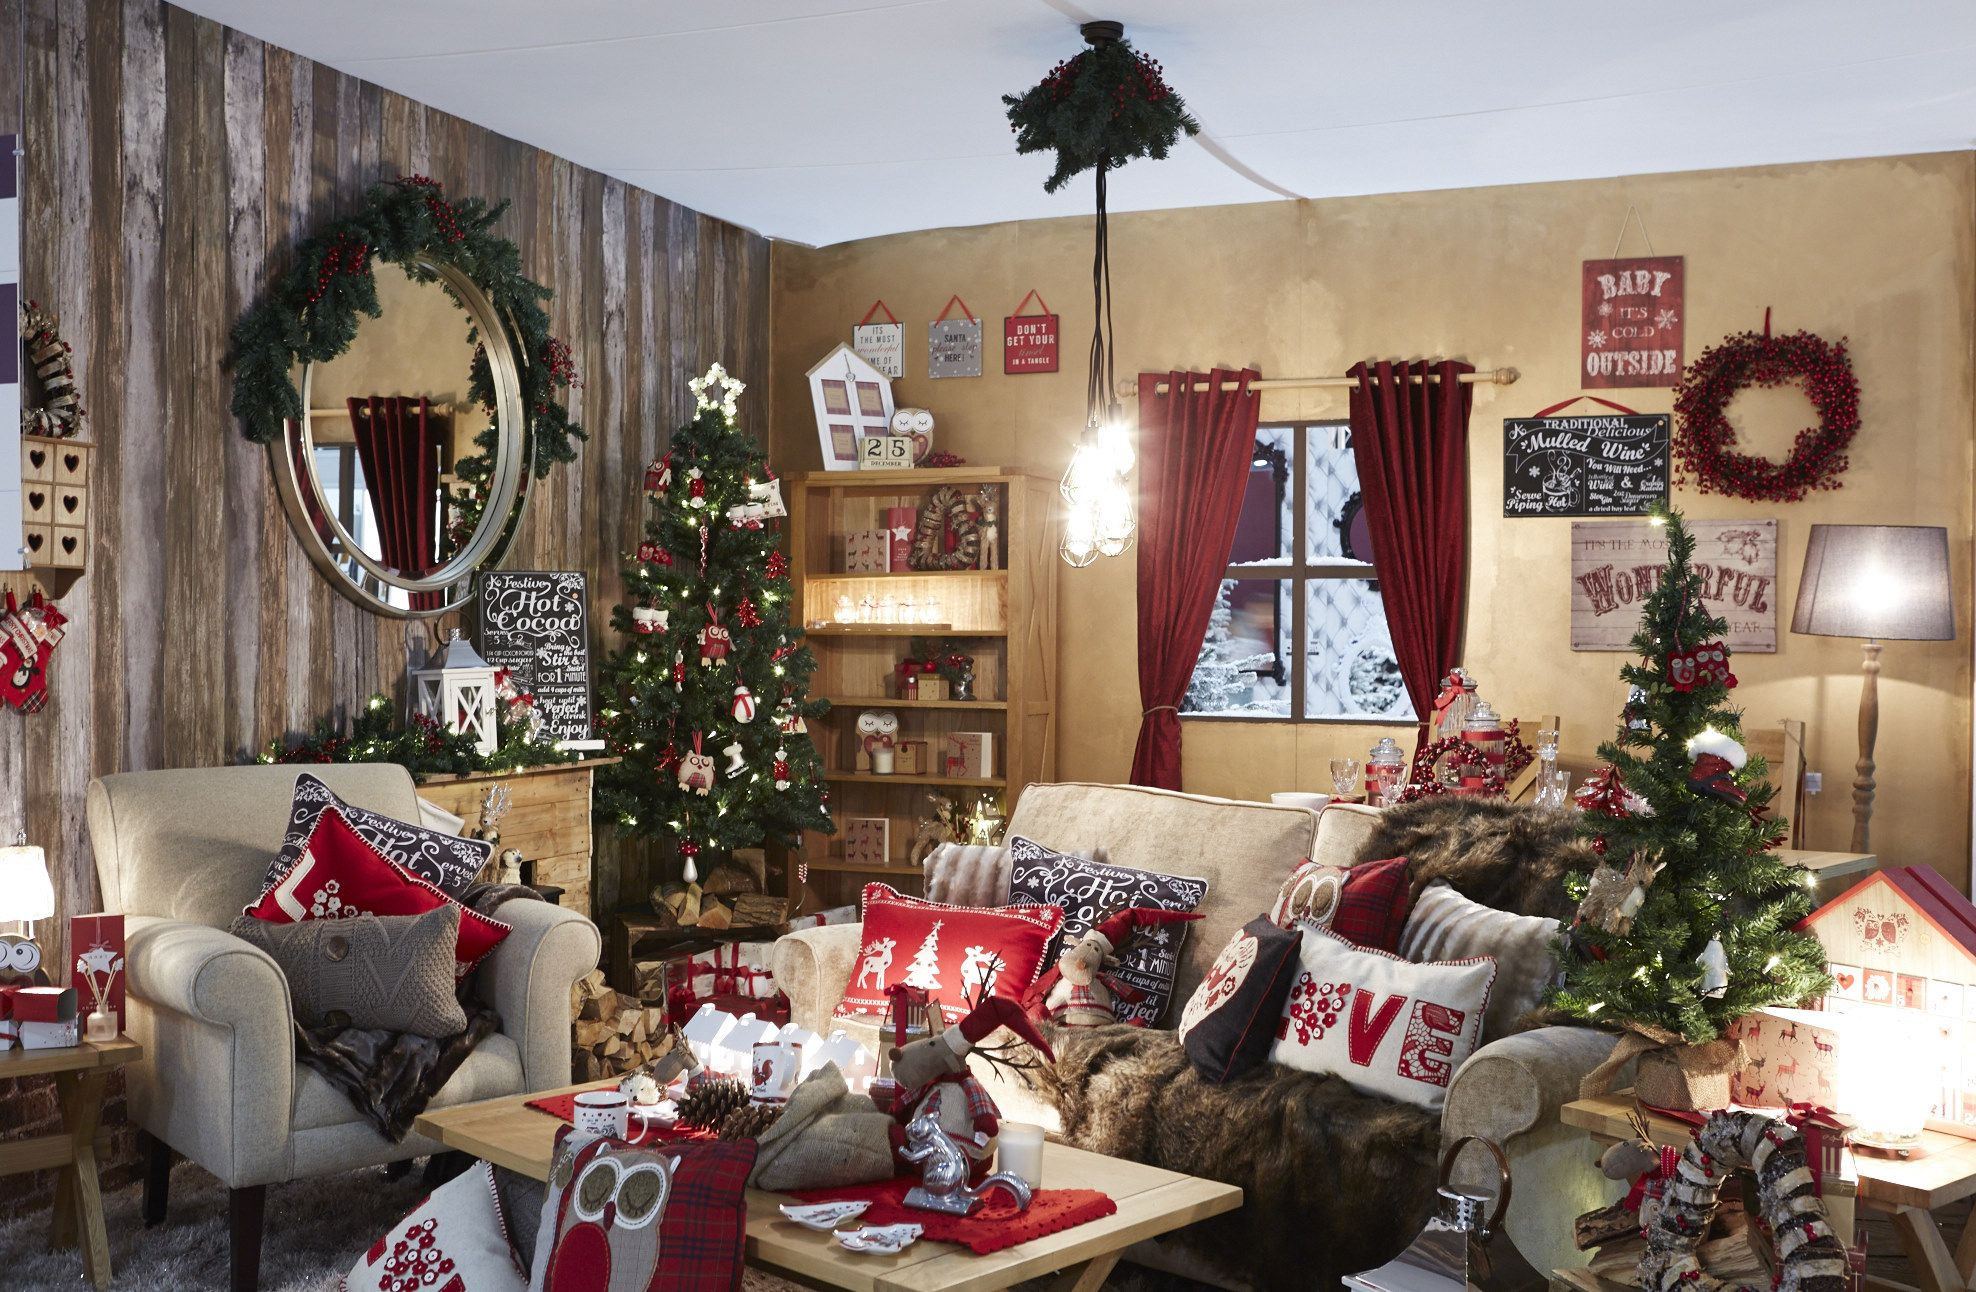 Festive Roomset Have An Ideal Christmas Pinterest